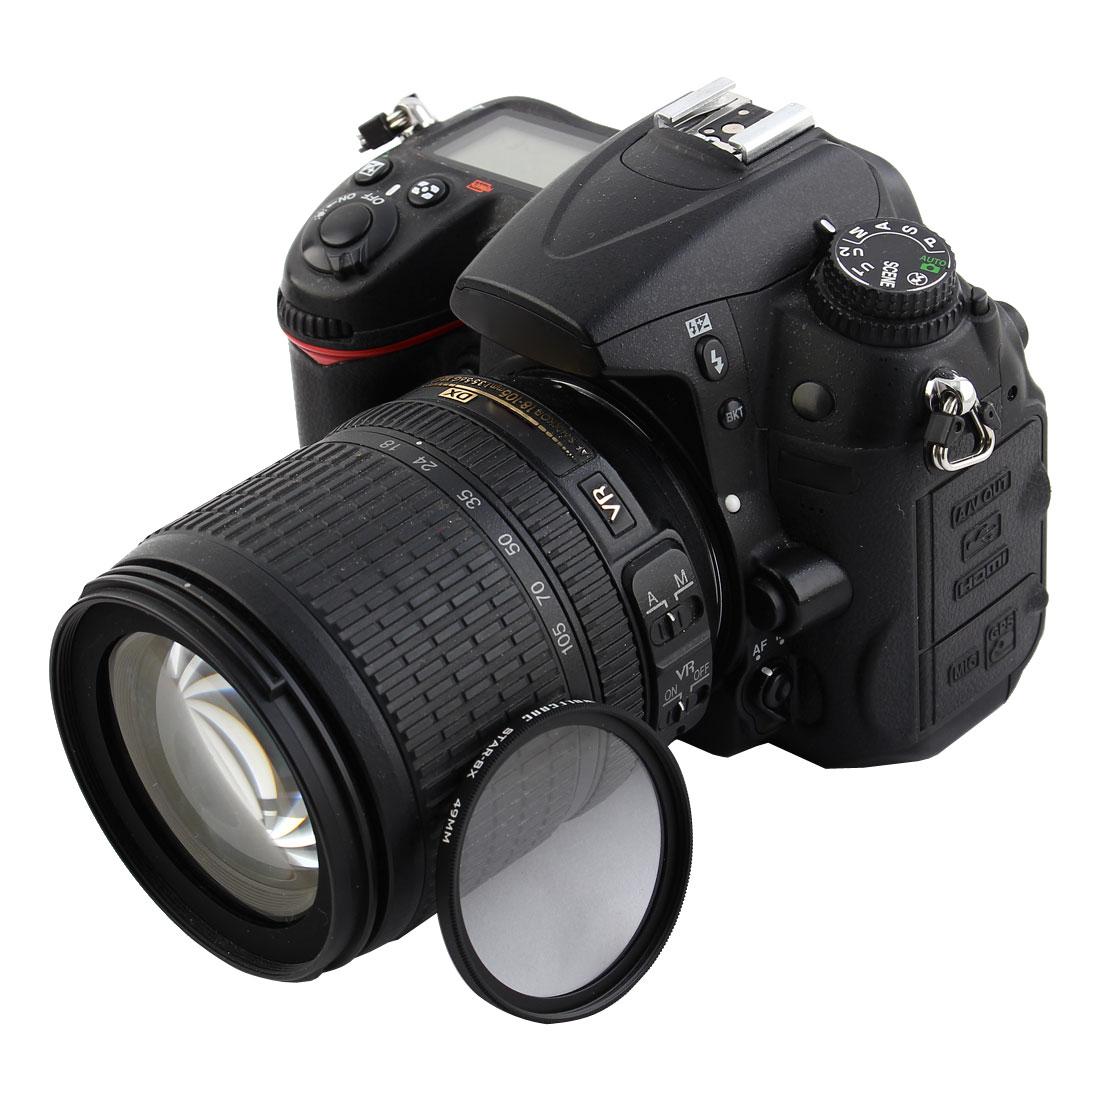 WOLFGANG Authorized Universal 49mm 8x Star-Effect Starburst Twinkle Lens Filter for DSLR Camera